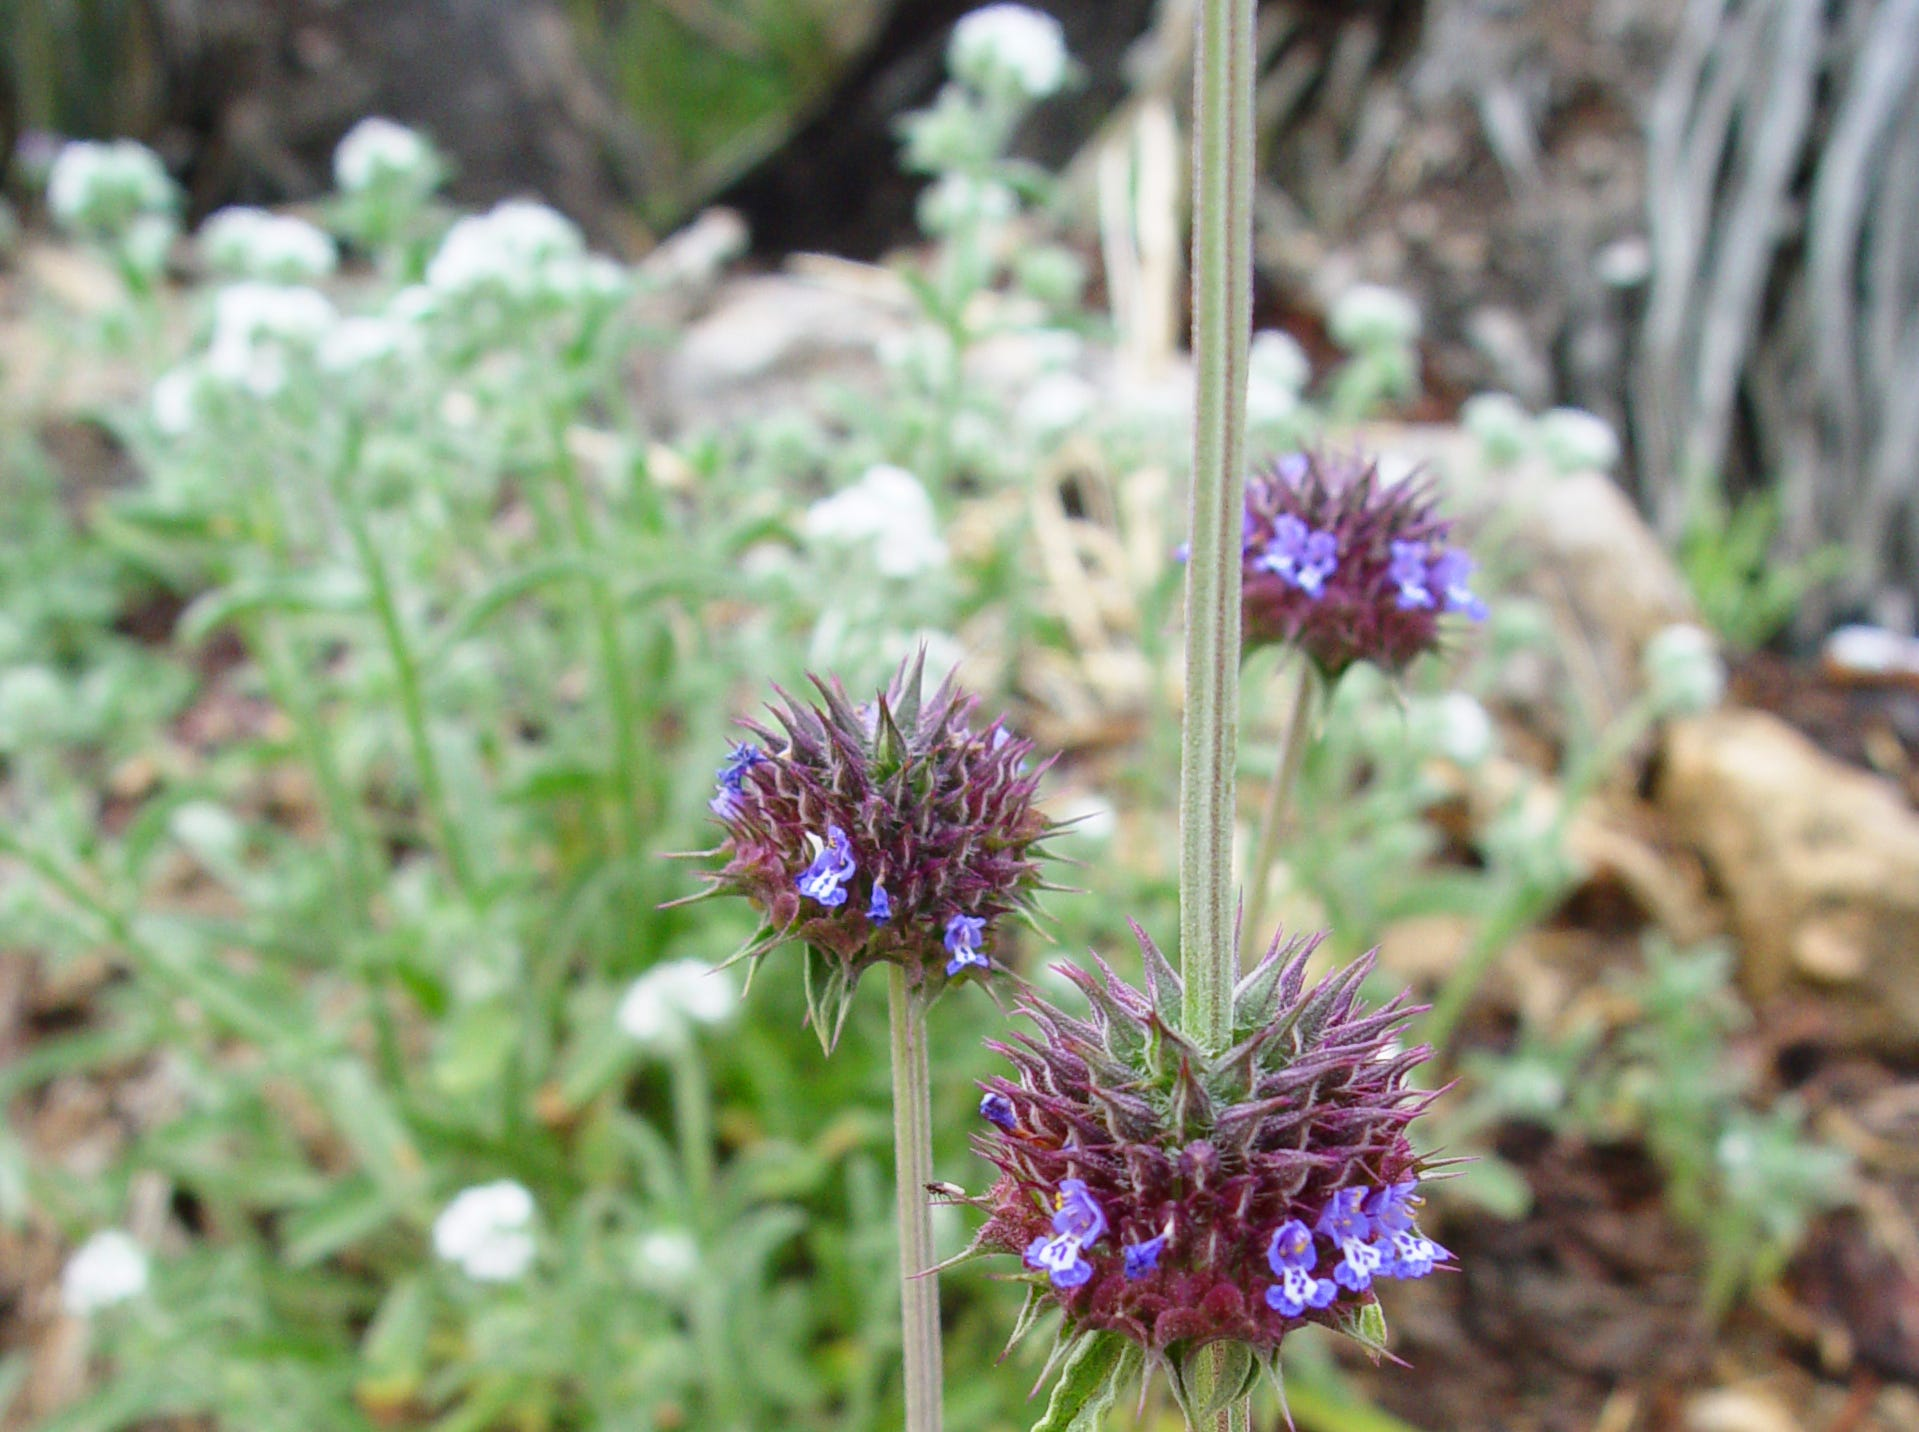 Chia (Salvia columbarie) is an early flower with flat foliage and its upright stems and whorls of purple-blue flowers that produce valuable seed for local tribes.